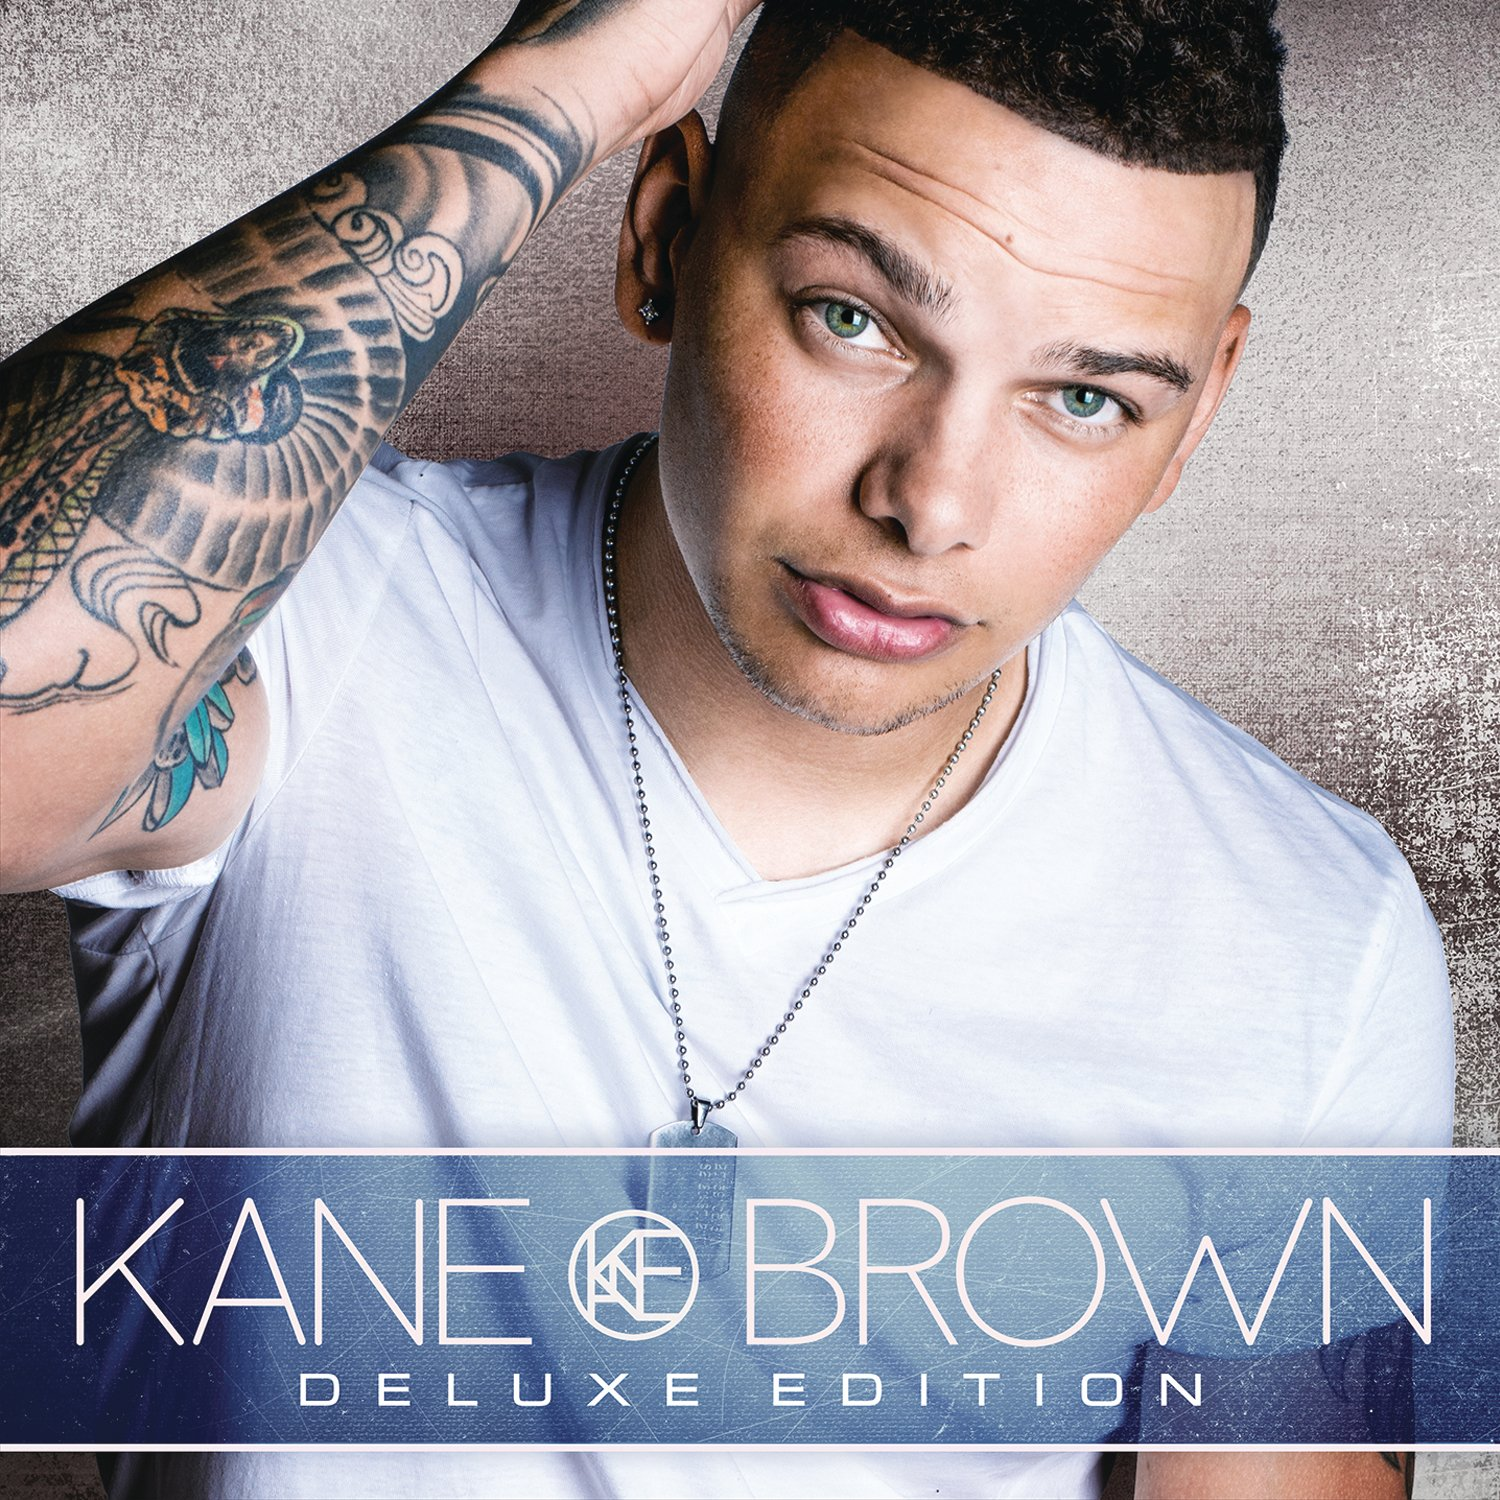 Kane Brown (Deluxe) by RCA